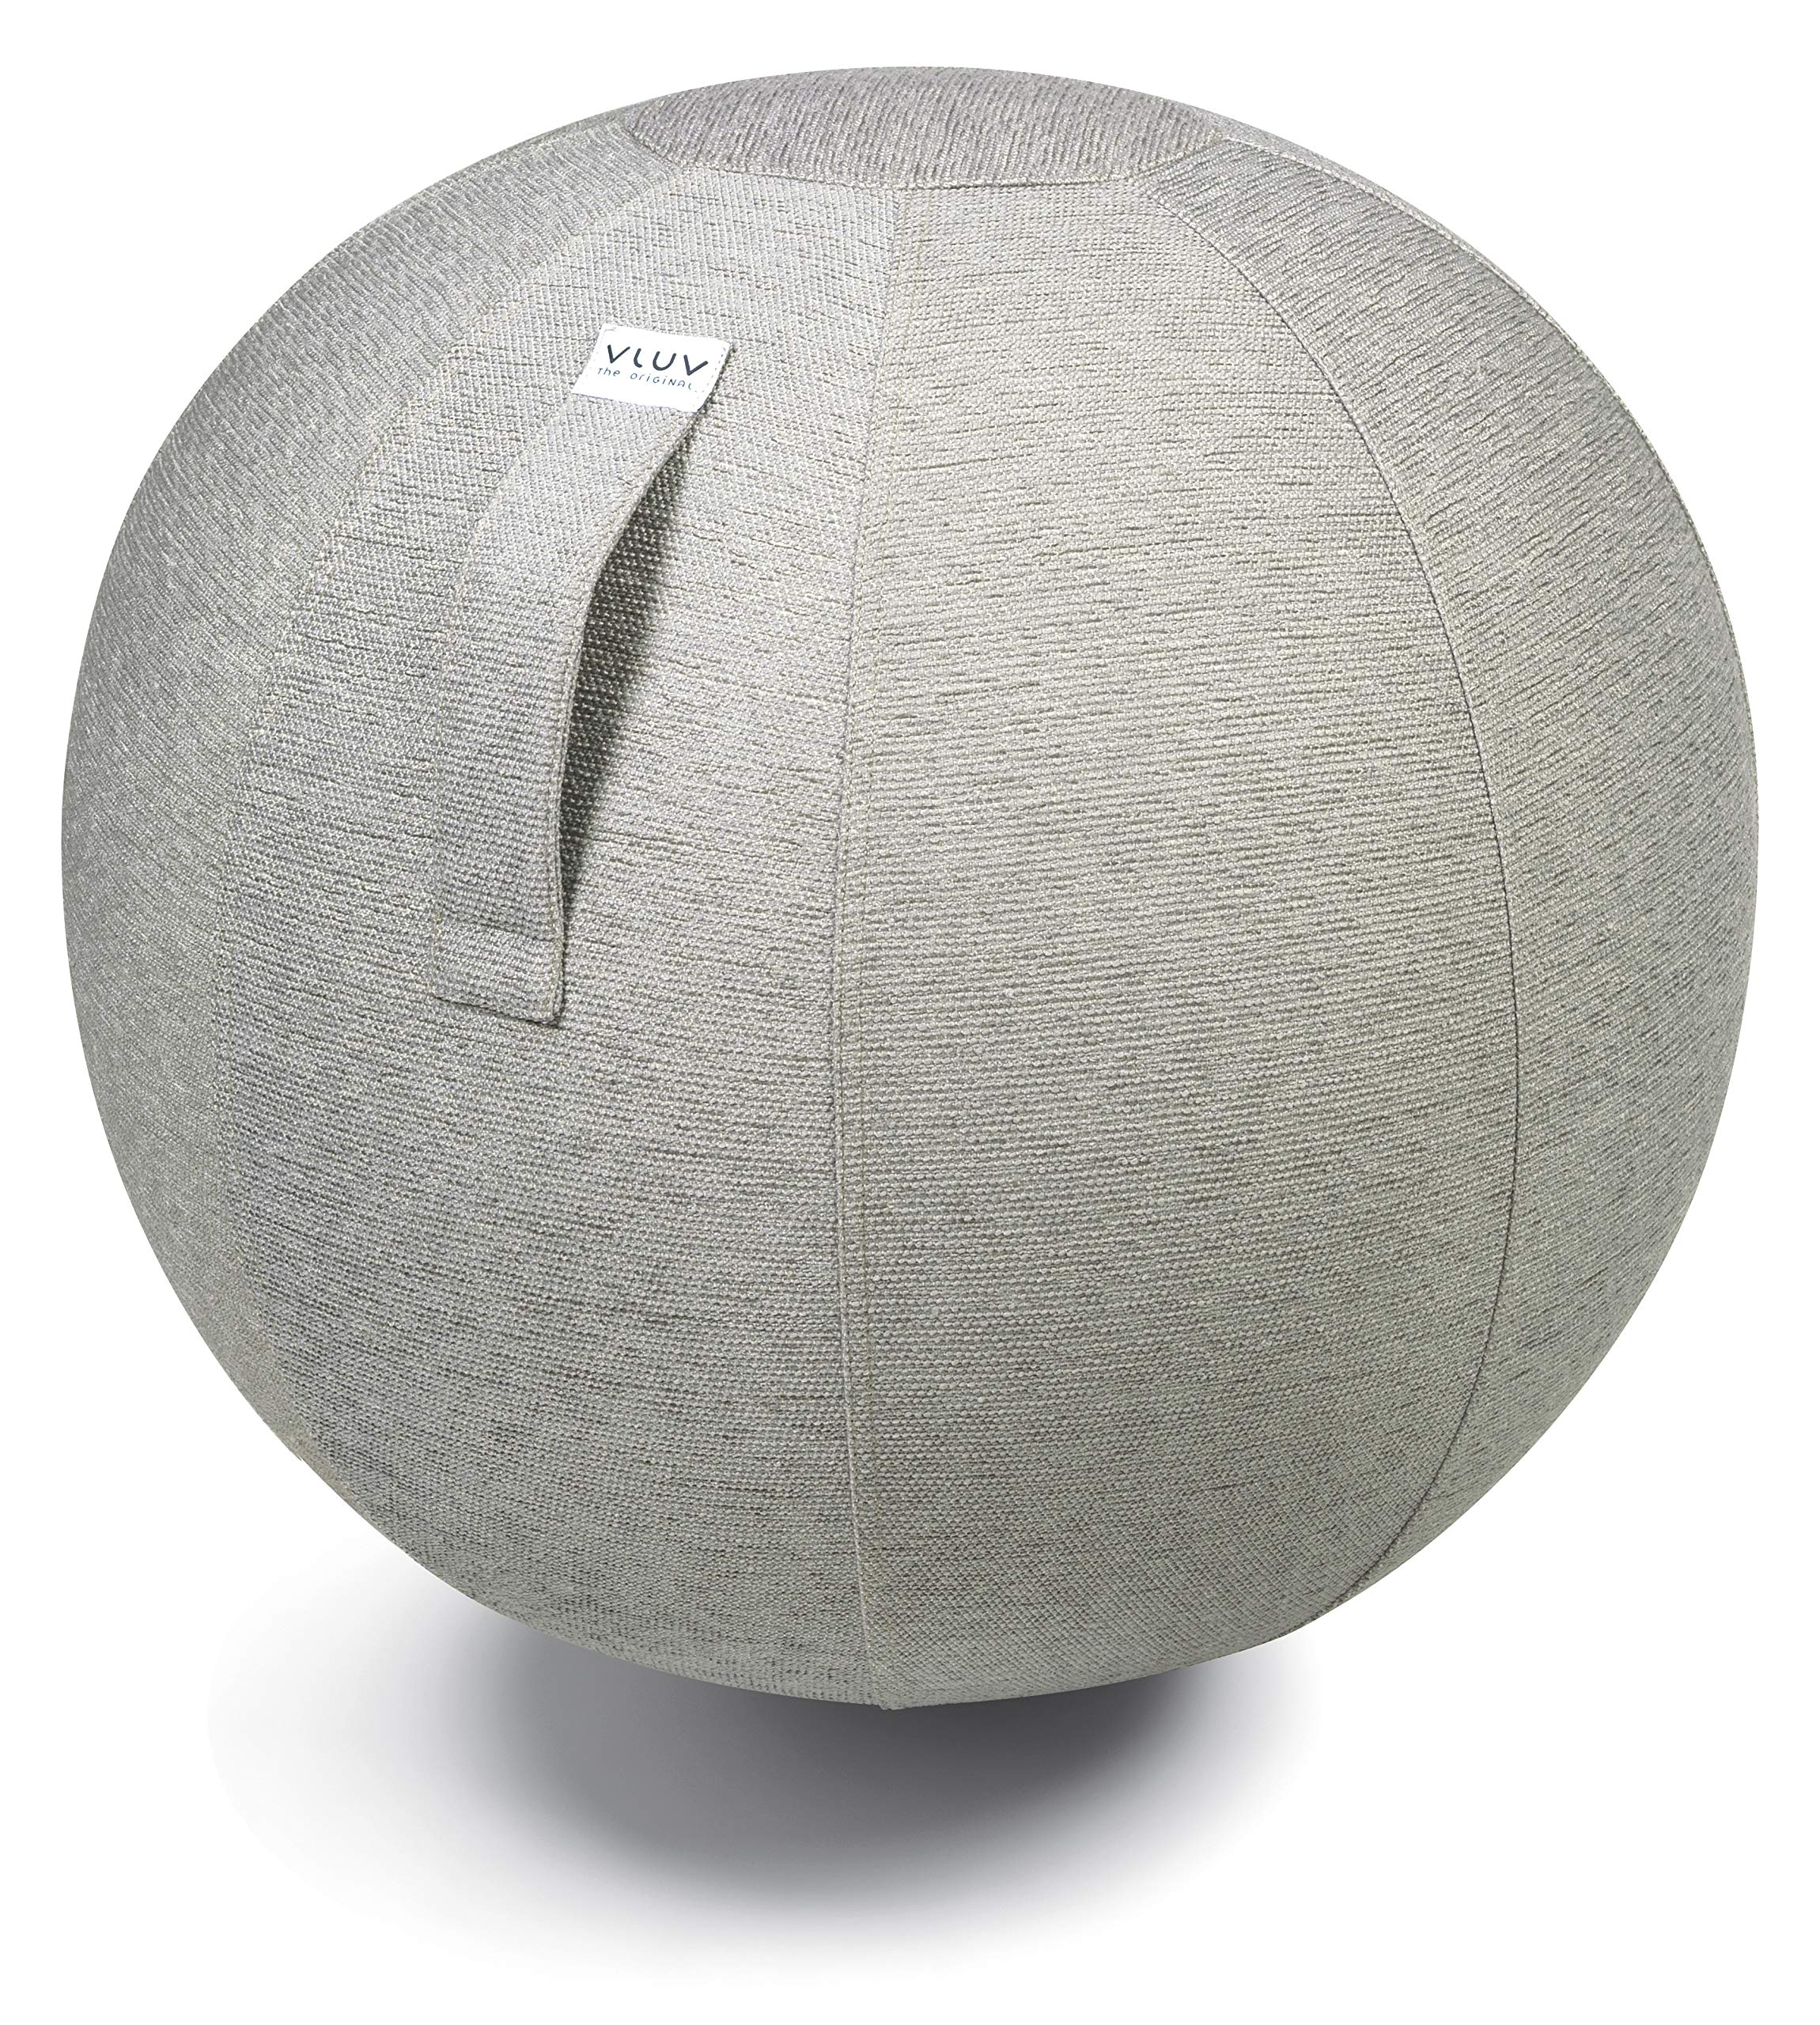 VLUV STOV Premium Quality Self-Standing Sitting Ball with Handle - Home or Office Chair and Exercise Ball for Yoga, Back Stretching, or Gym- Upholstery Fabric Stability Ball (Concrete, 25.6'') by VLUV